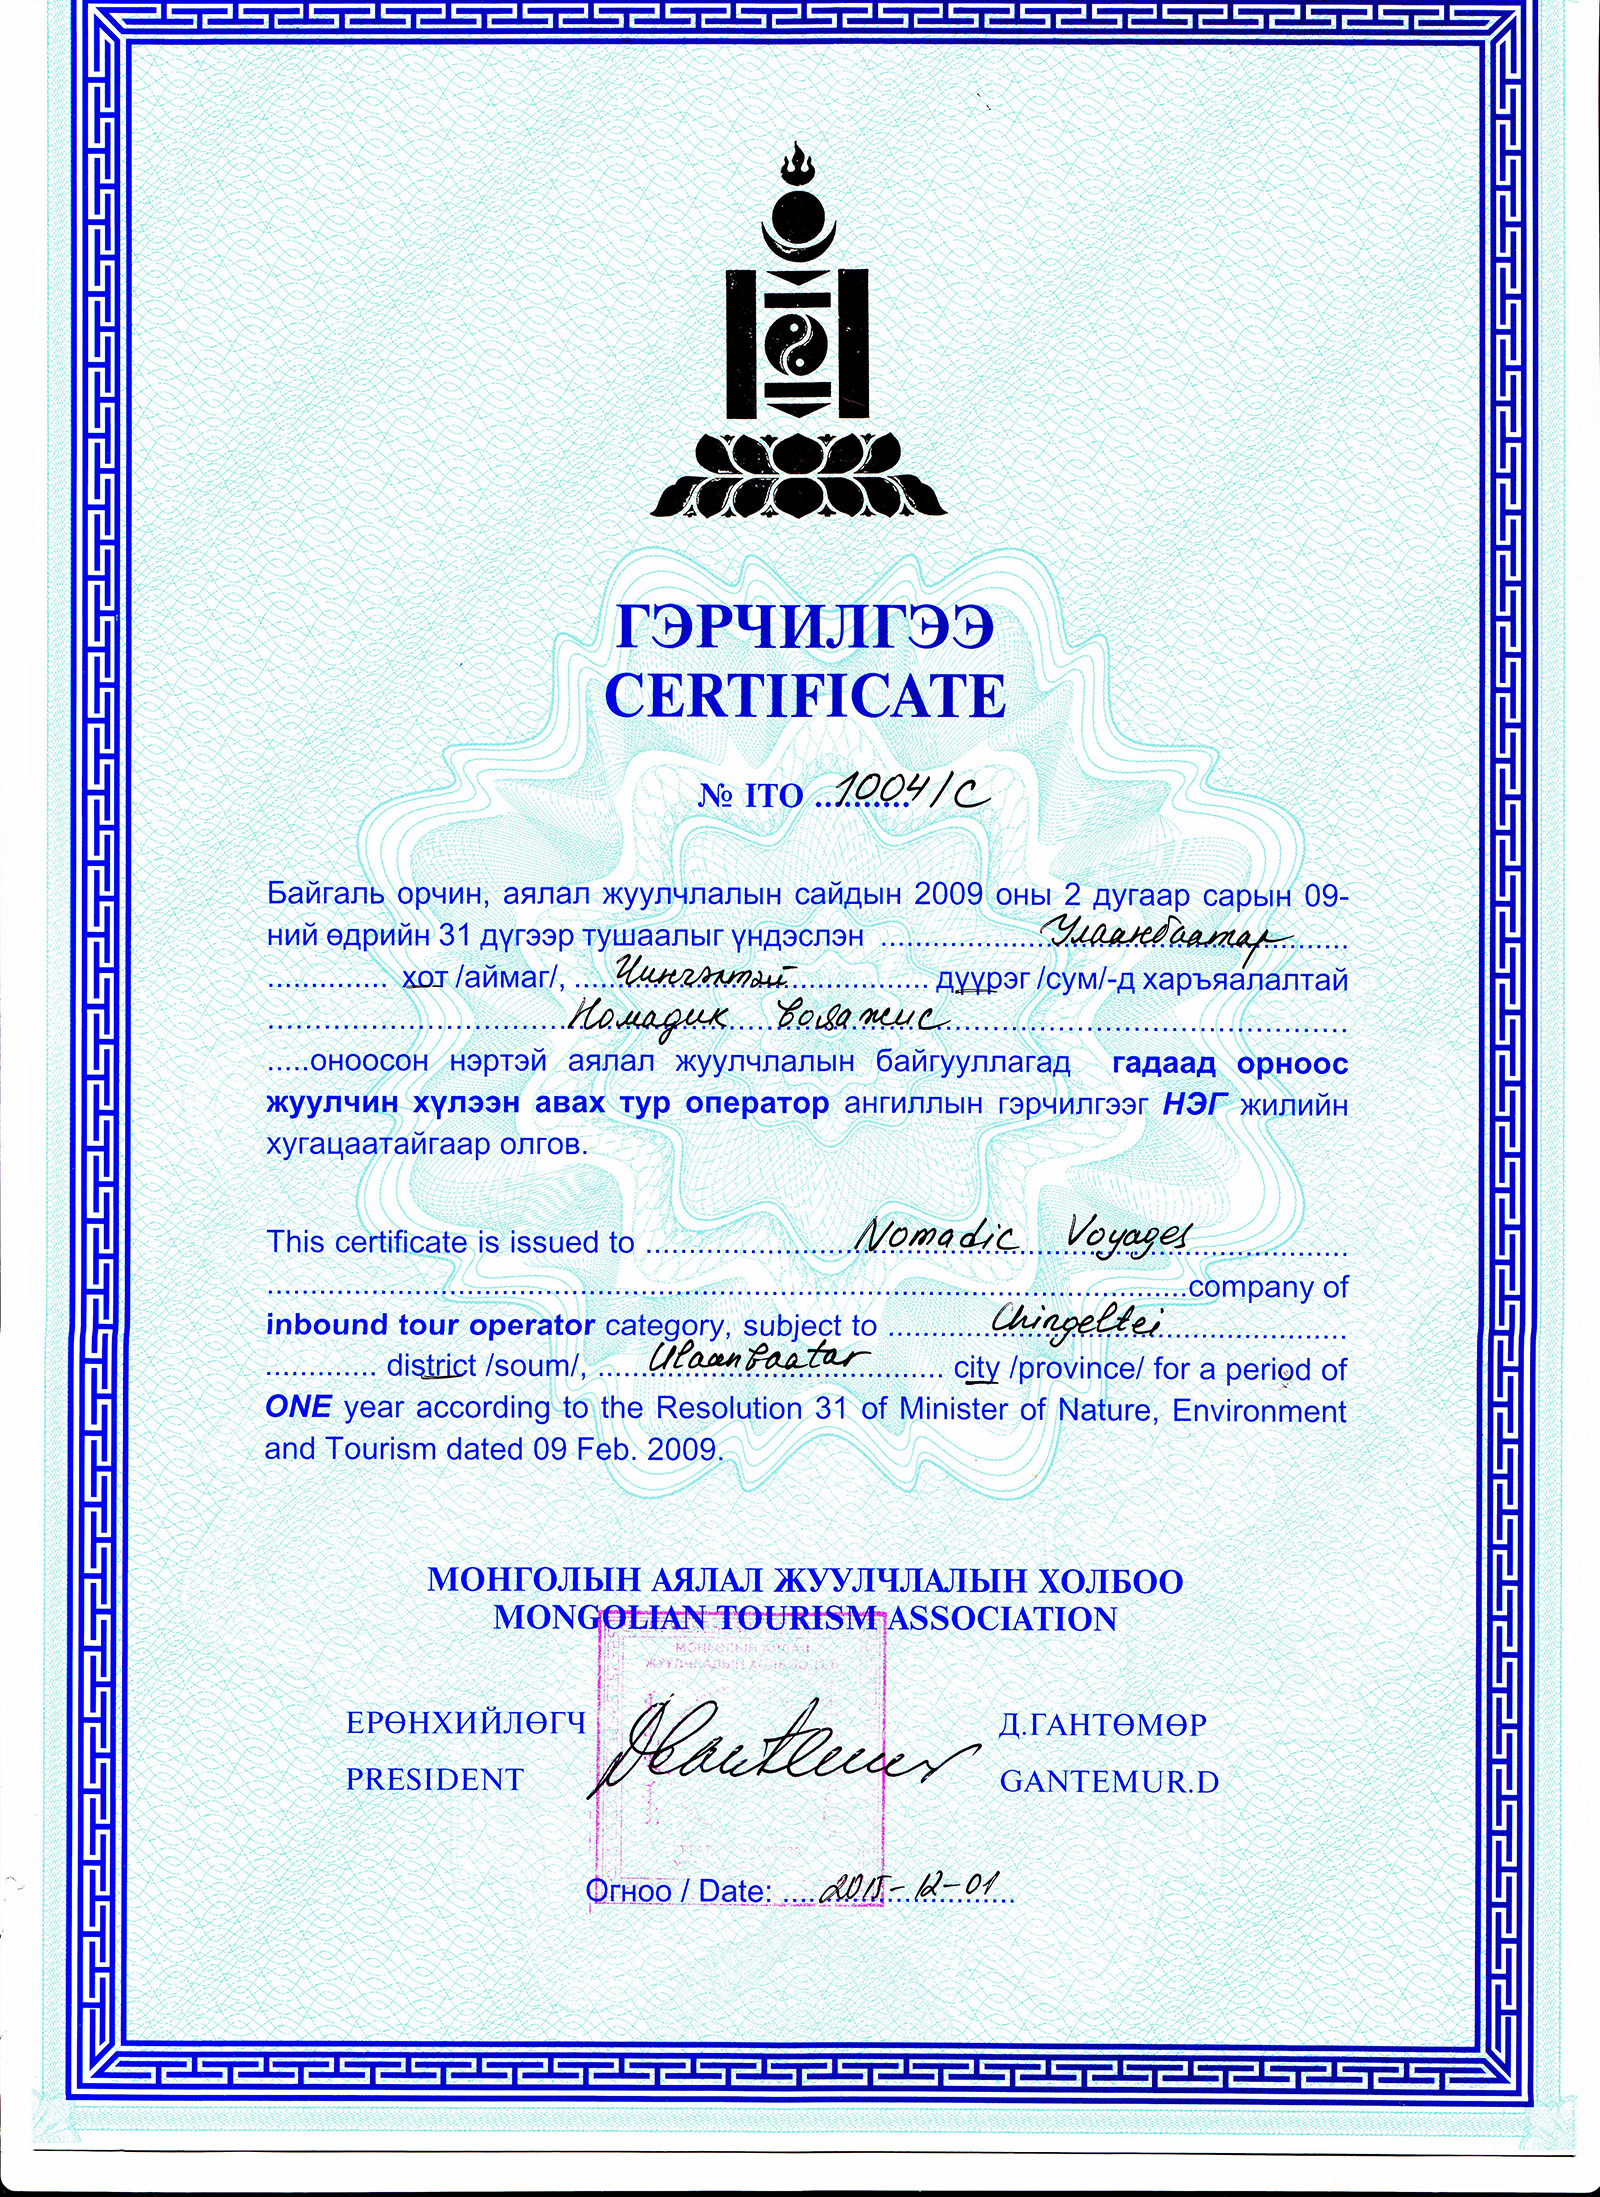 NOMADIC VOYAGES CERTIFICATE OF TOURISM ASSOCIATION